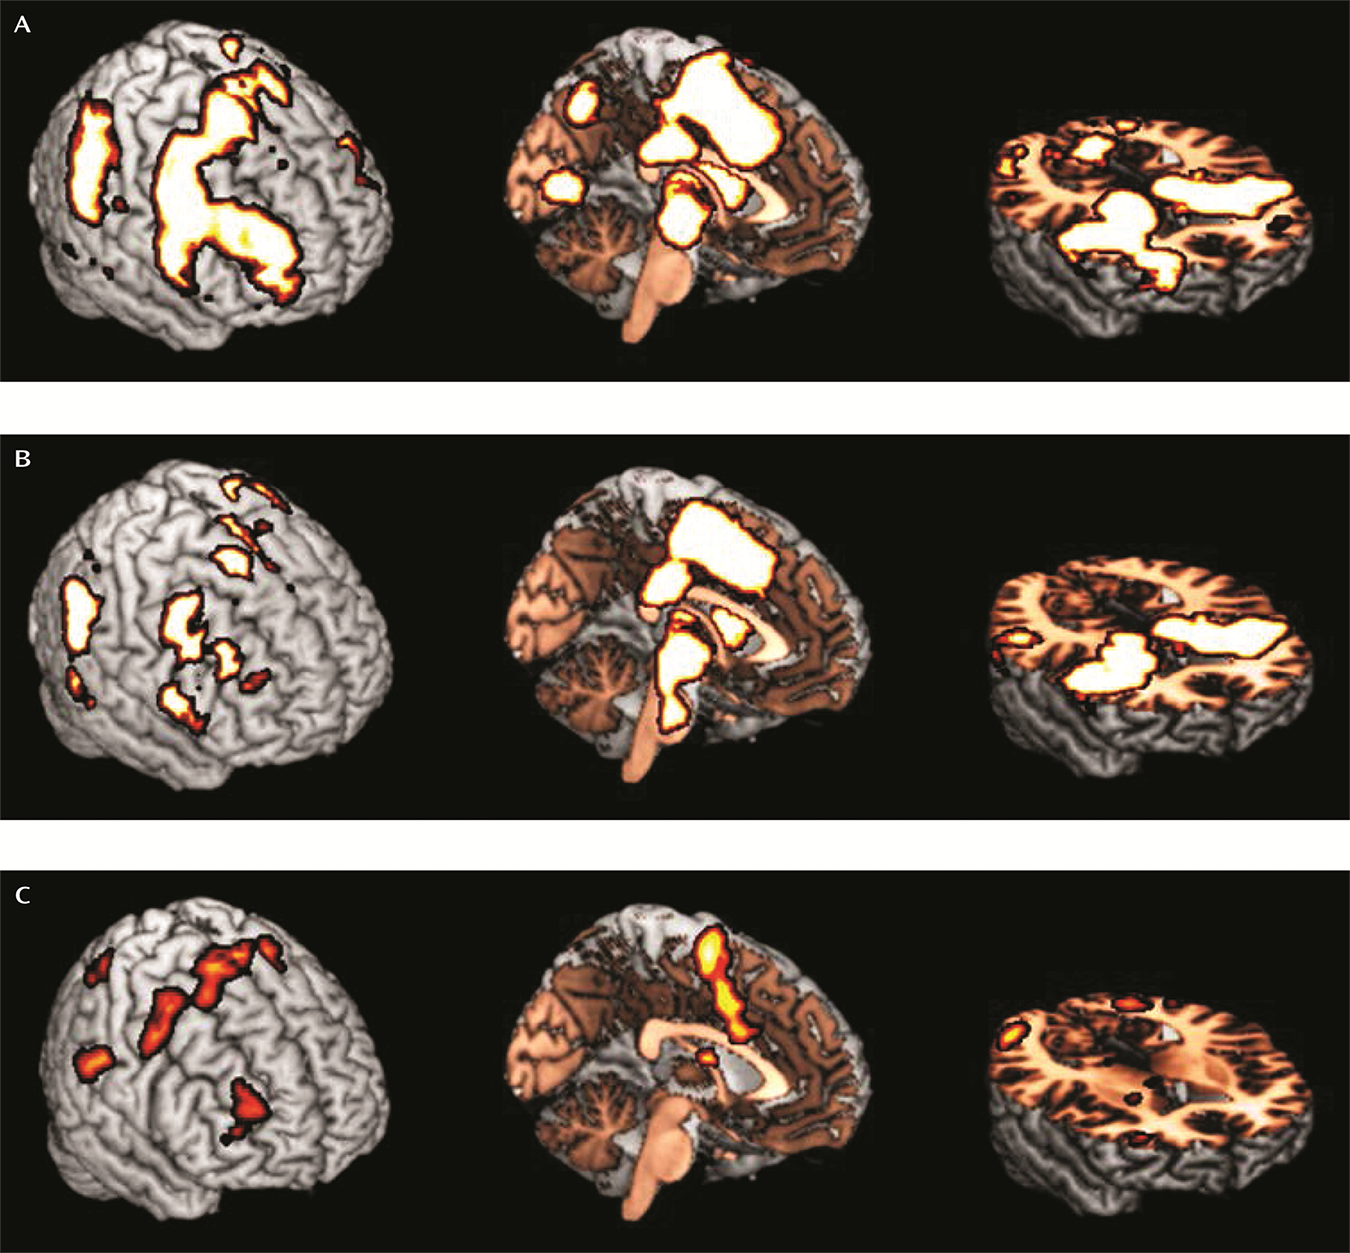 Thalamo-Cortical Activation and Connectivity During Response Preparation in Adults With Persistent and Remitted ADHD